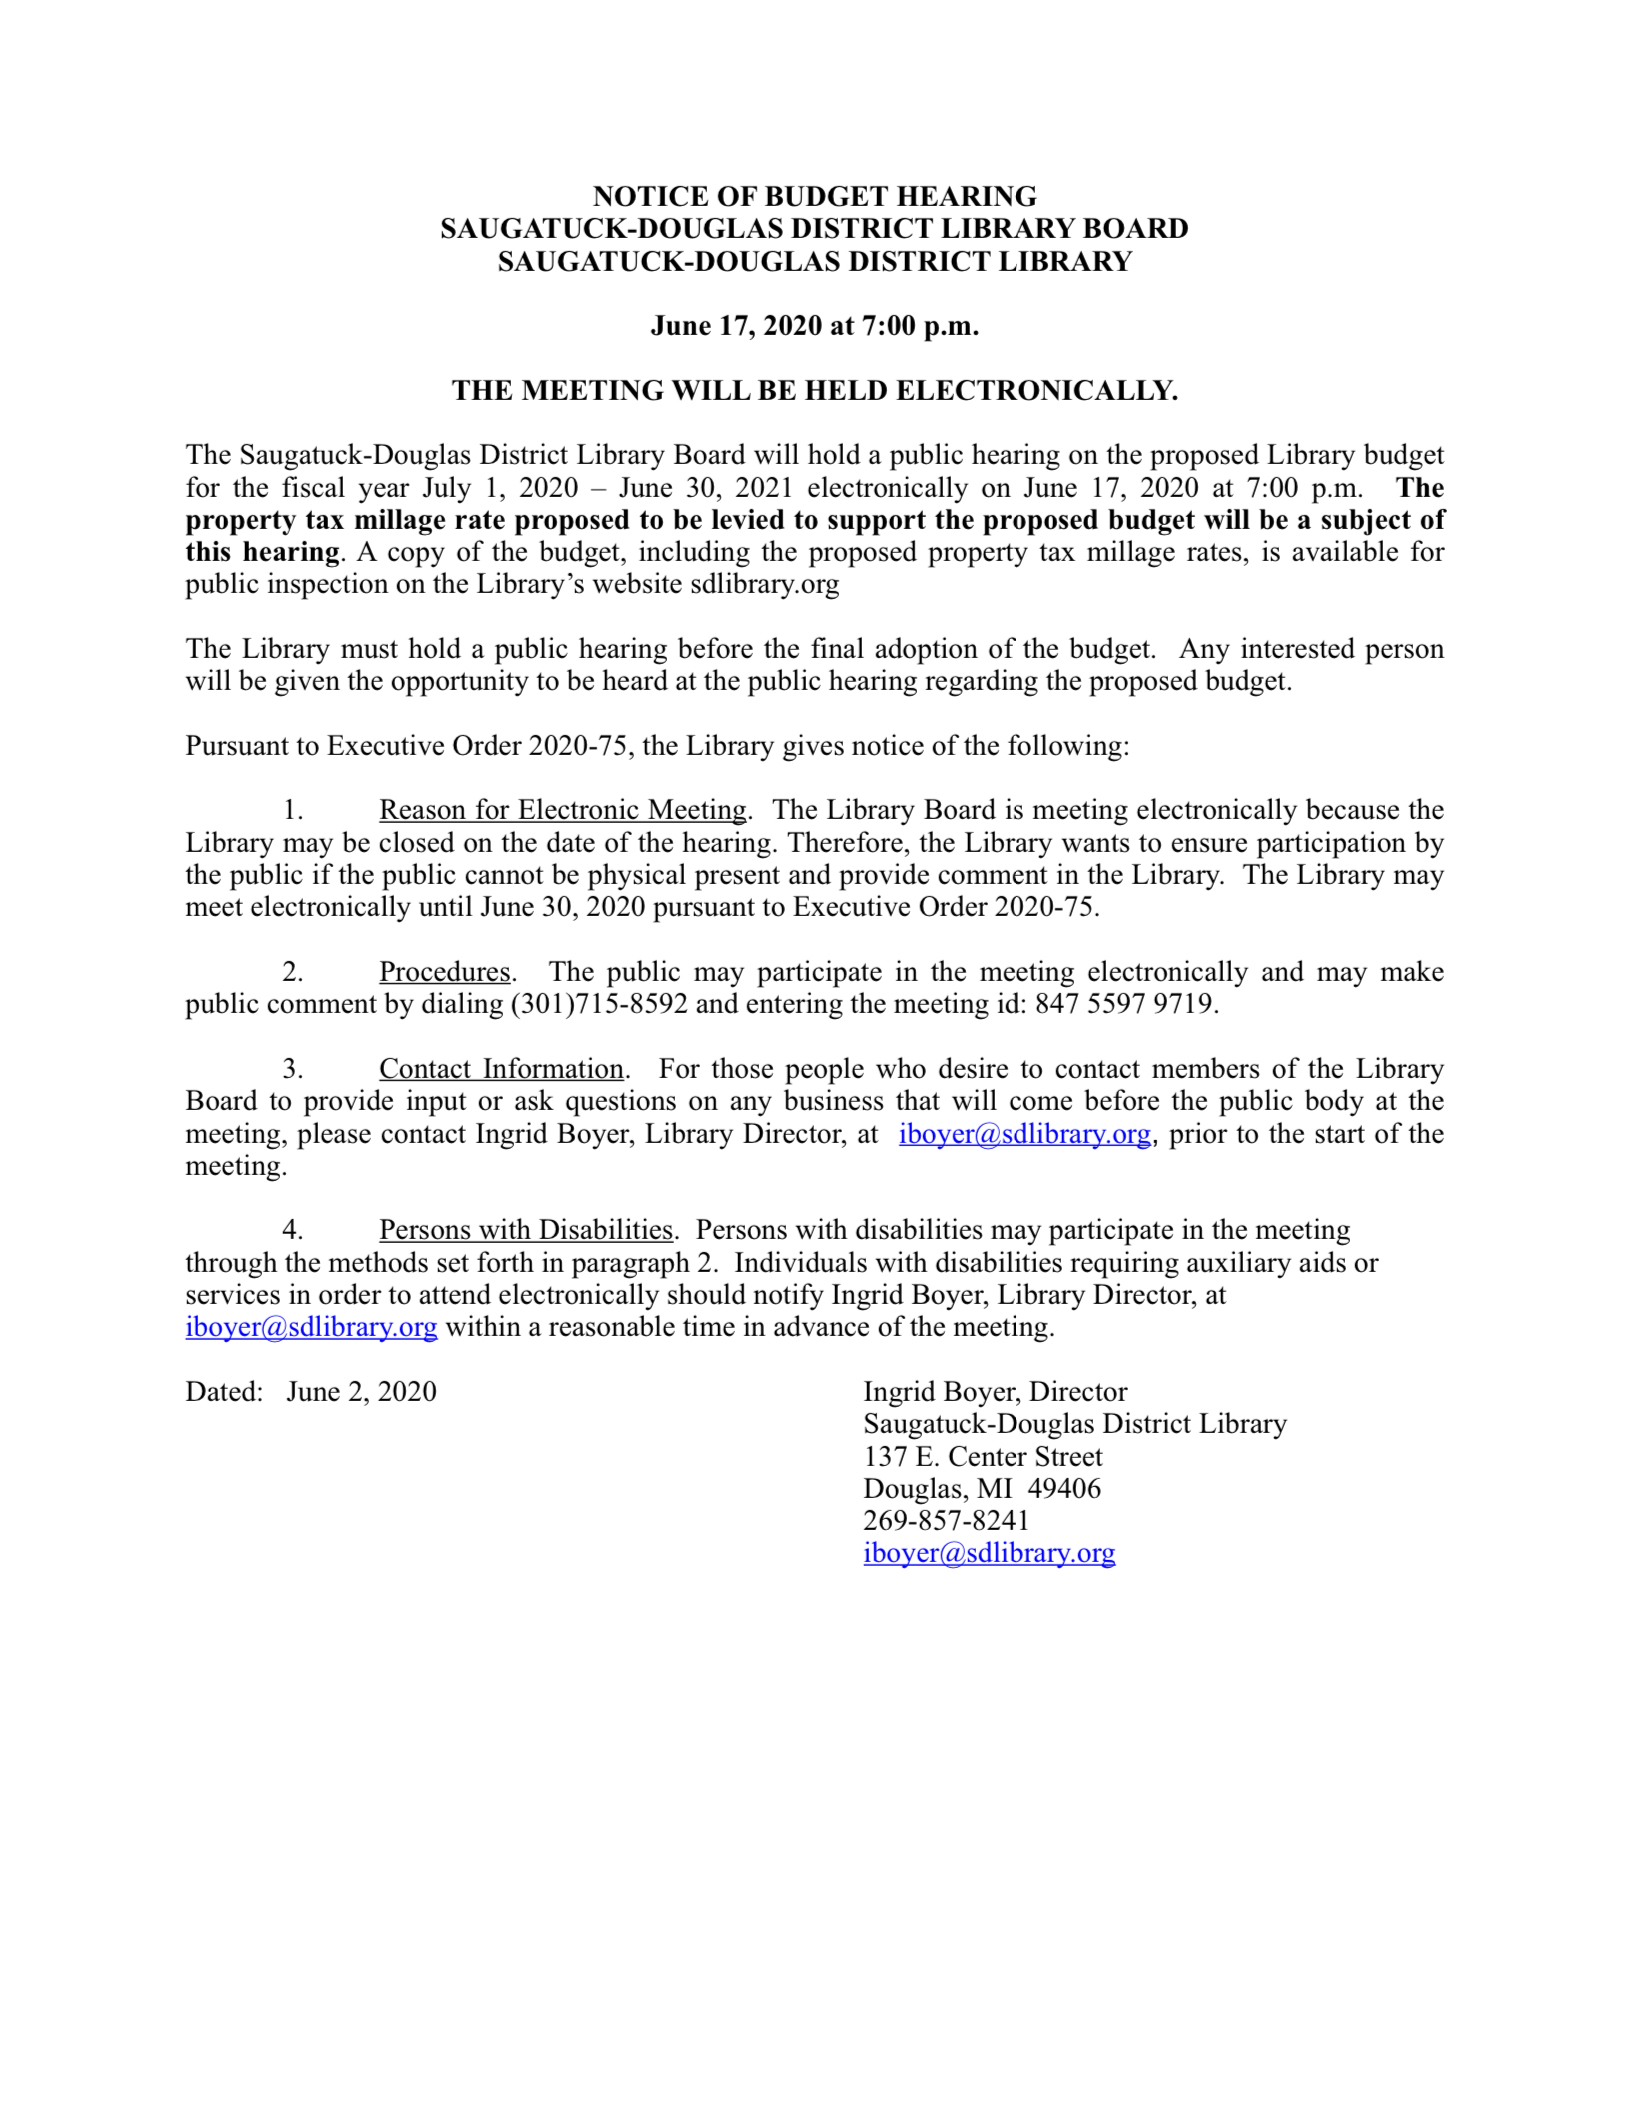 Notice of Budget Hearing 2020-21